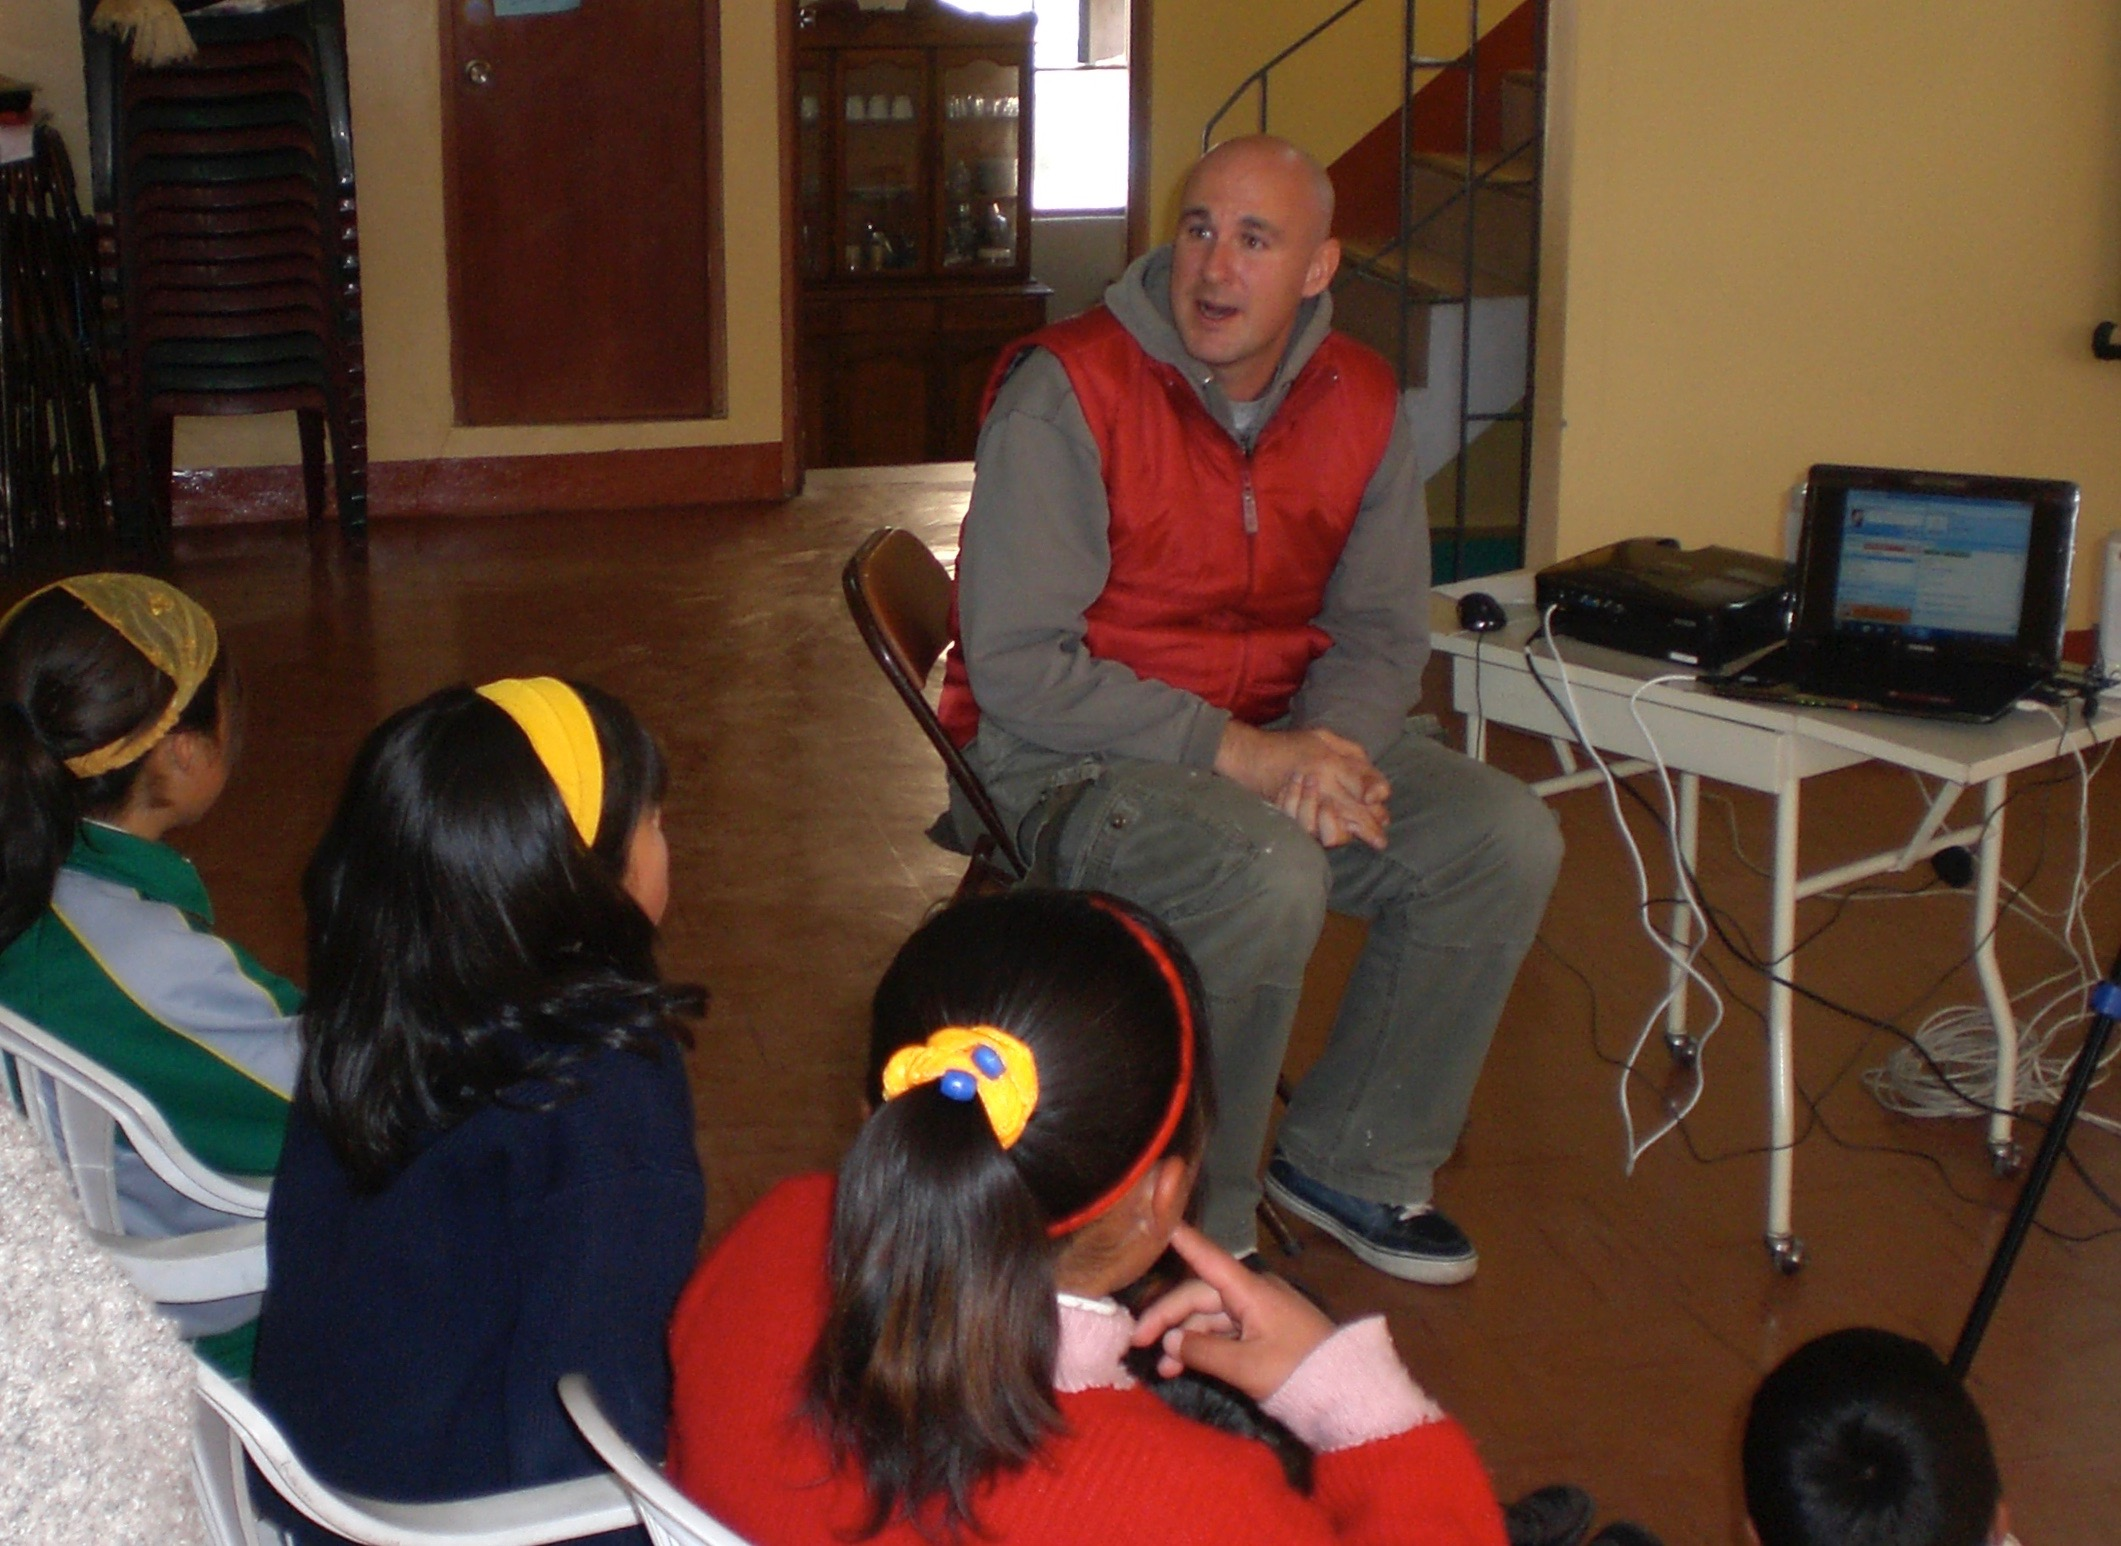 Jed prepares a group of kids from La Oroya to have a Skype conversation with a classroom in the U.S.